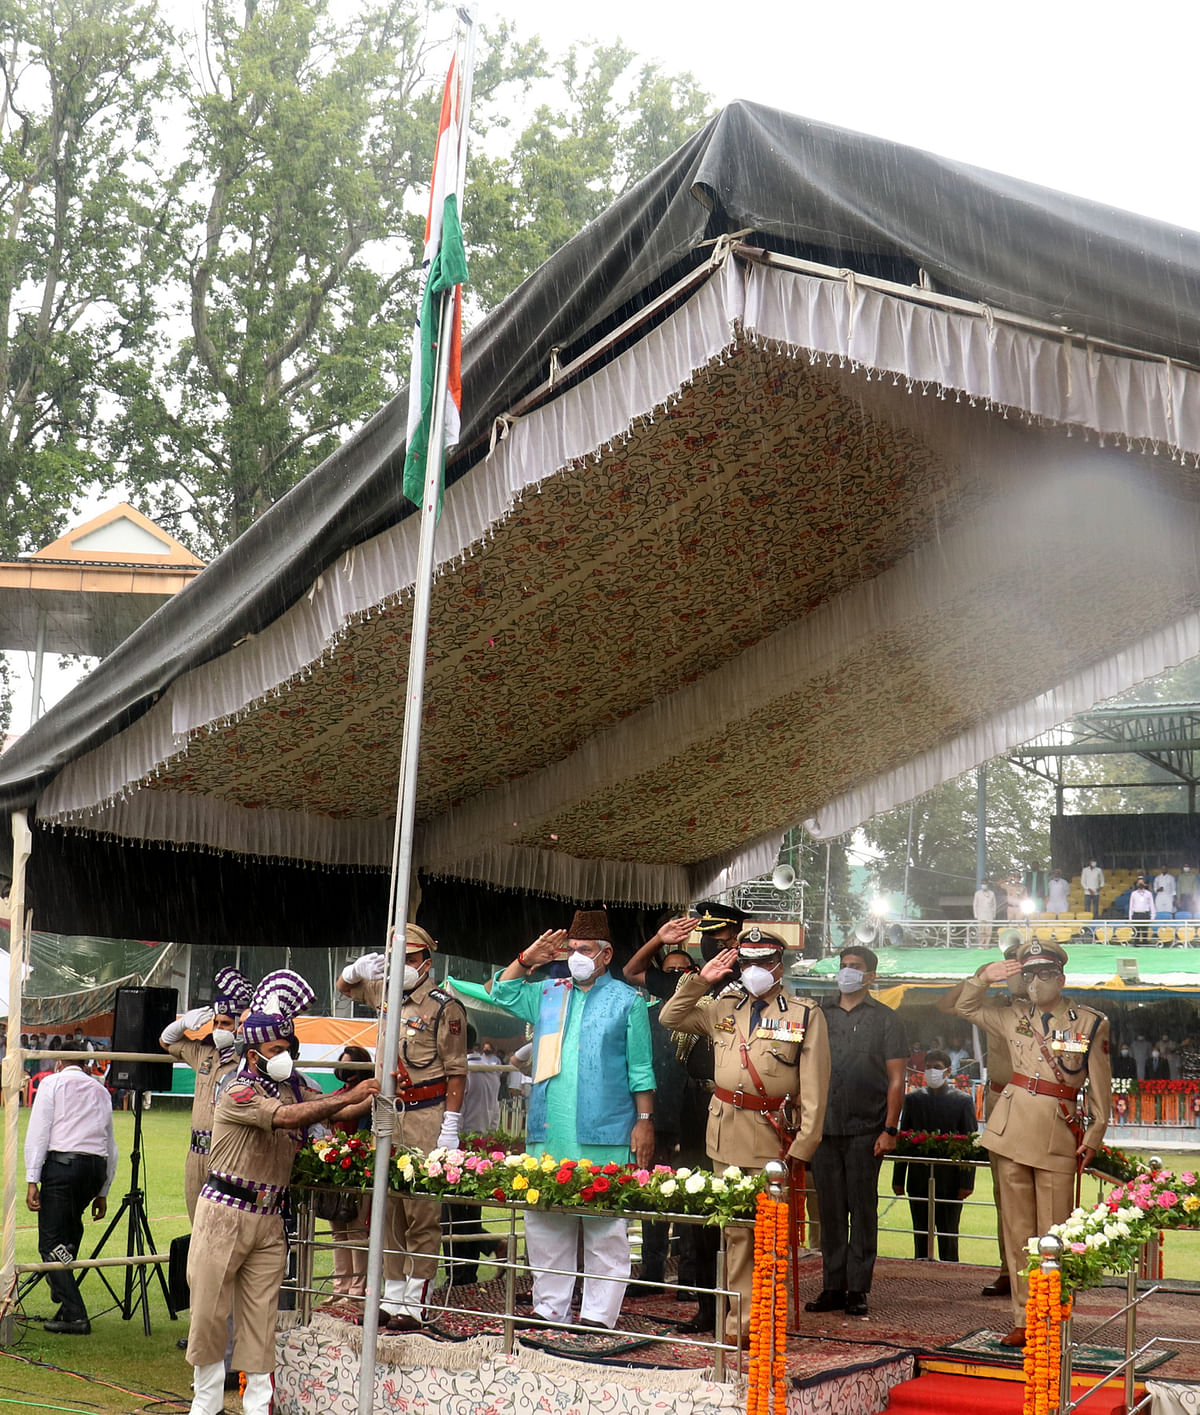 Lieutenant Governor, Manoj Sinha hoisted the Tricolour during the 75th Independence Day celebrations at Sher-i-Kashmir, Cricket Stadium on Sunday, 15 August 2021.